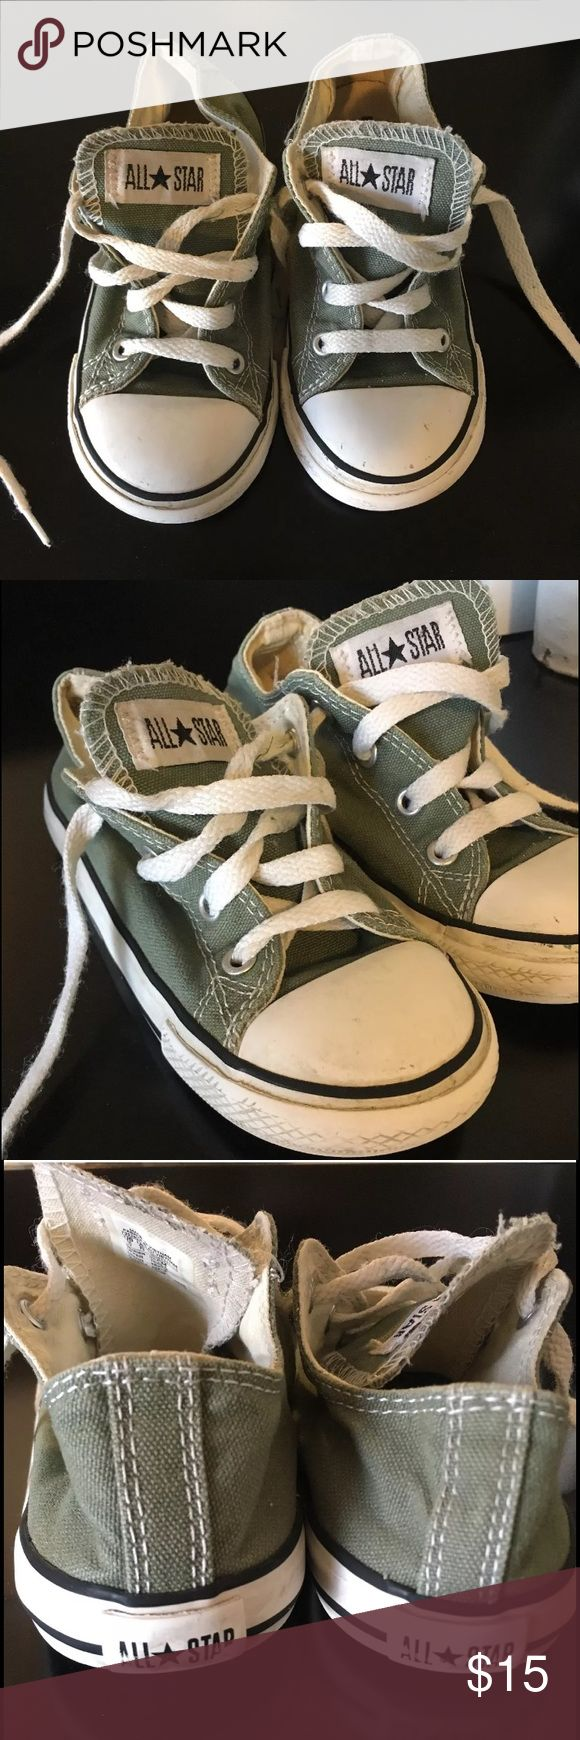 CONVERSE All Star shoes CONVERSE All Star chuck taylor tennis shoes, boys or girls, GUC Converse Shoes